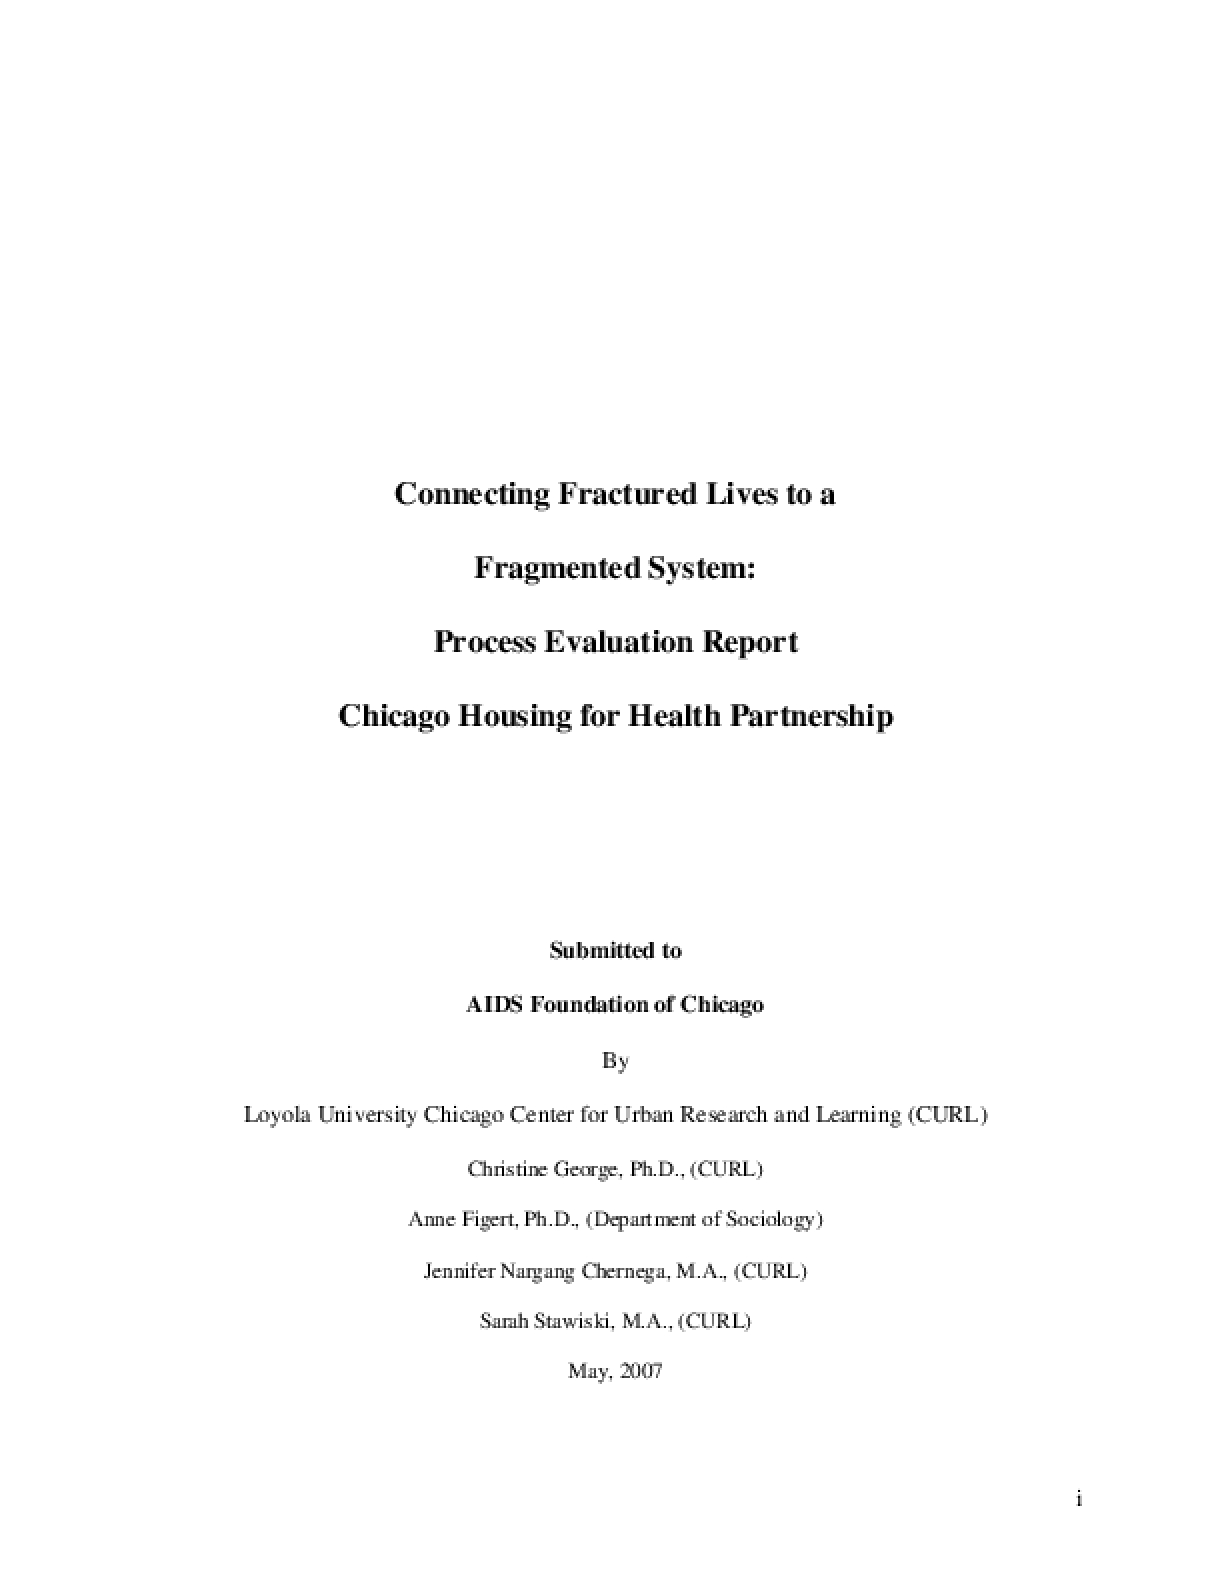 Connecting Fractured Lives to a Fragmented System: Process Evaluation Report Chicago Housing for Health Partnership